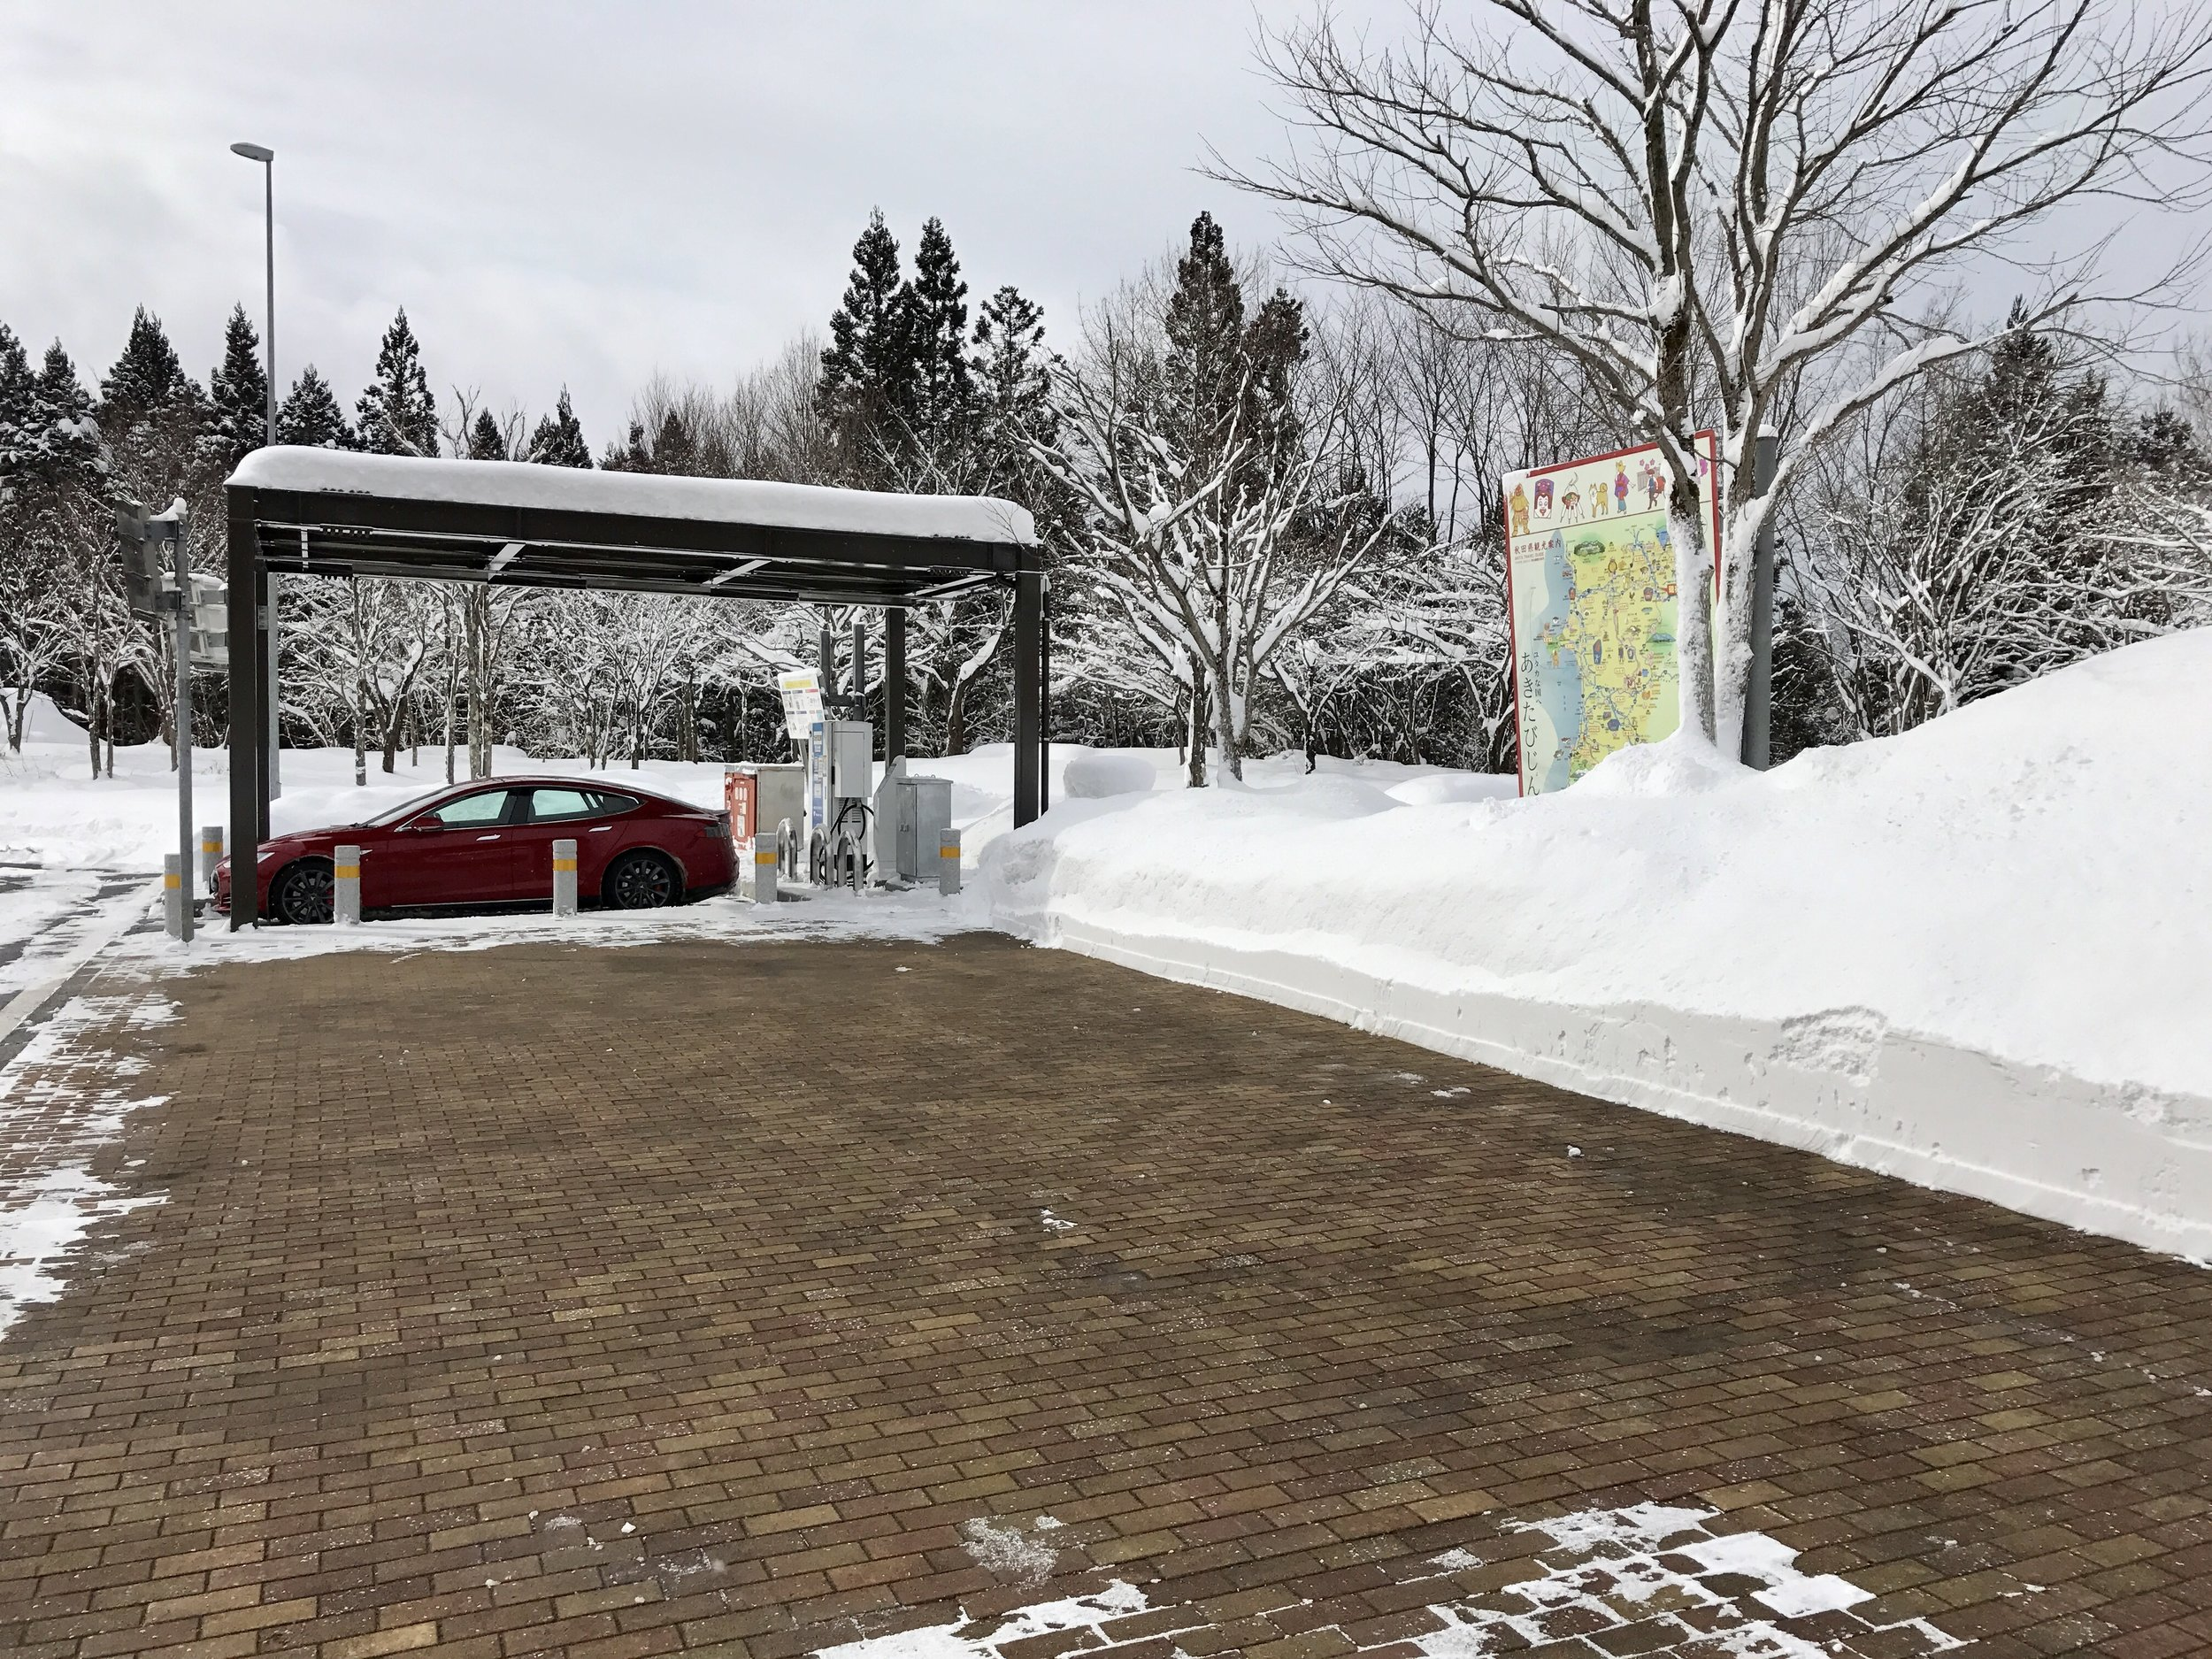 50 kW CHAdeMO in the snow